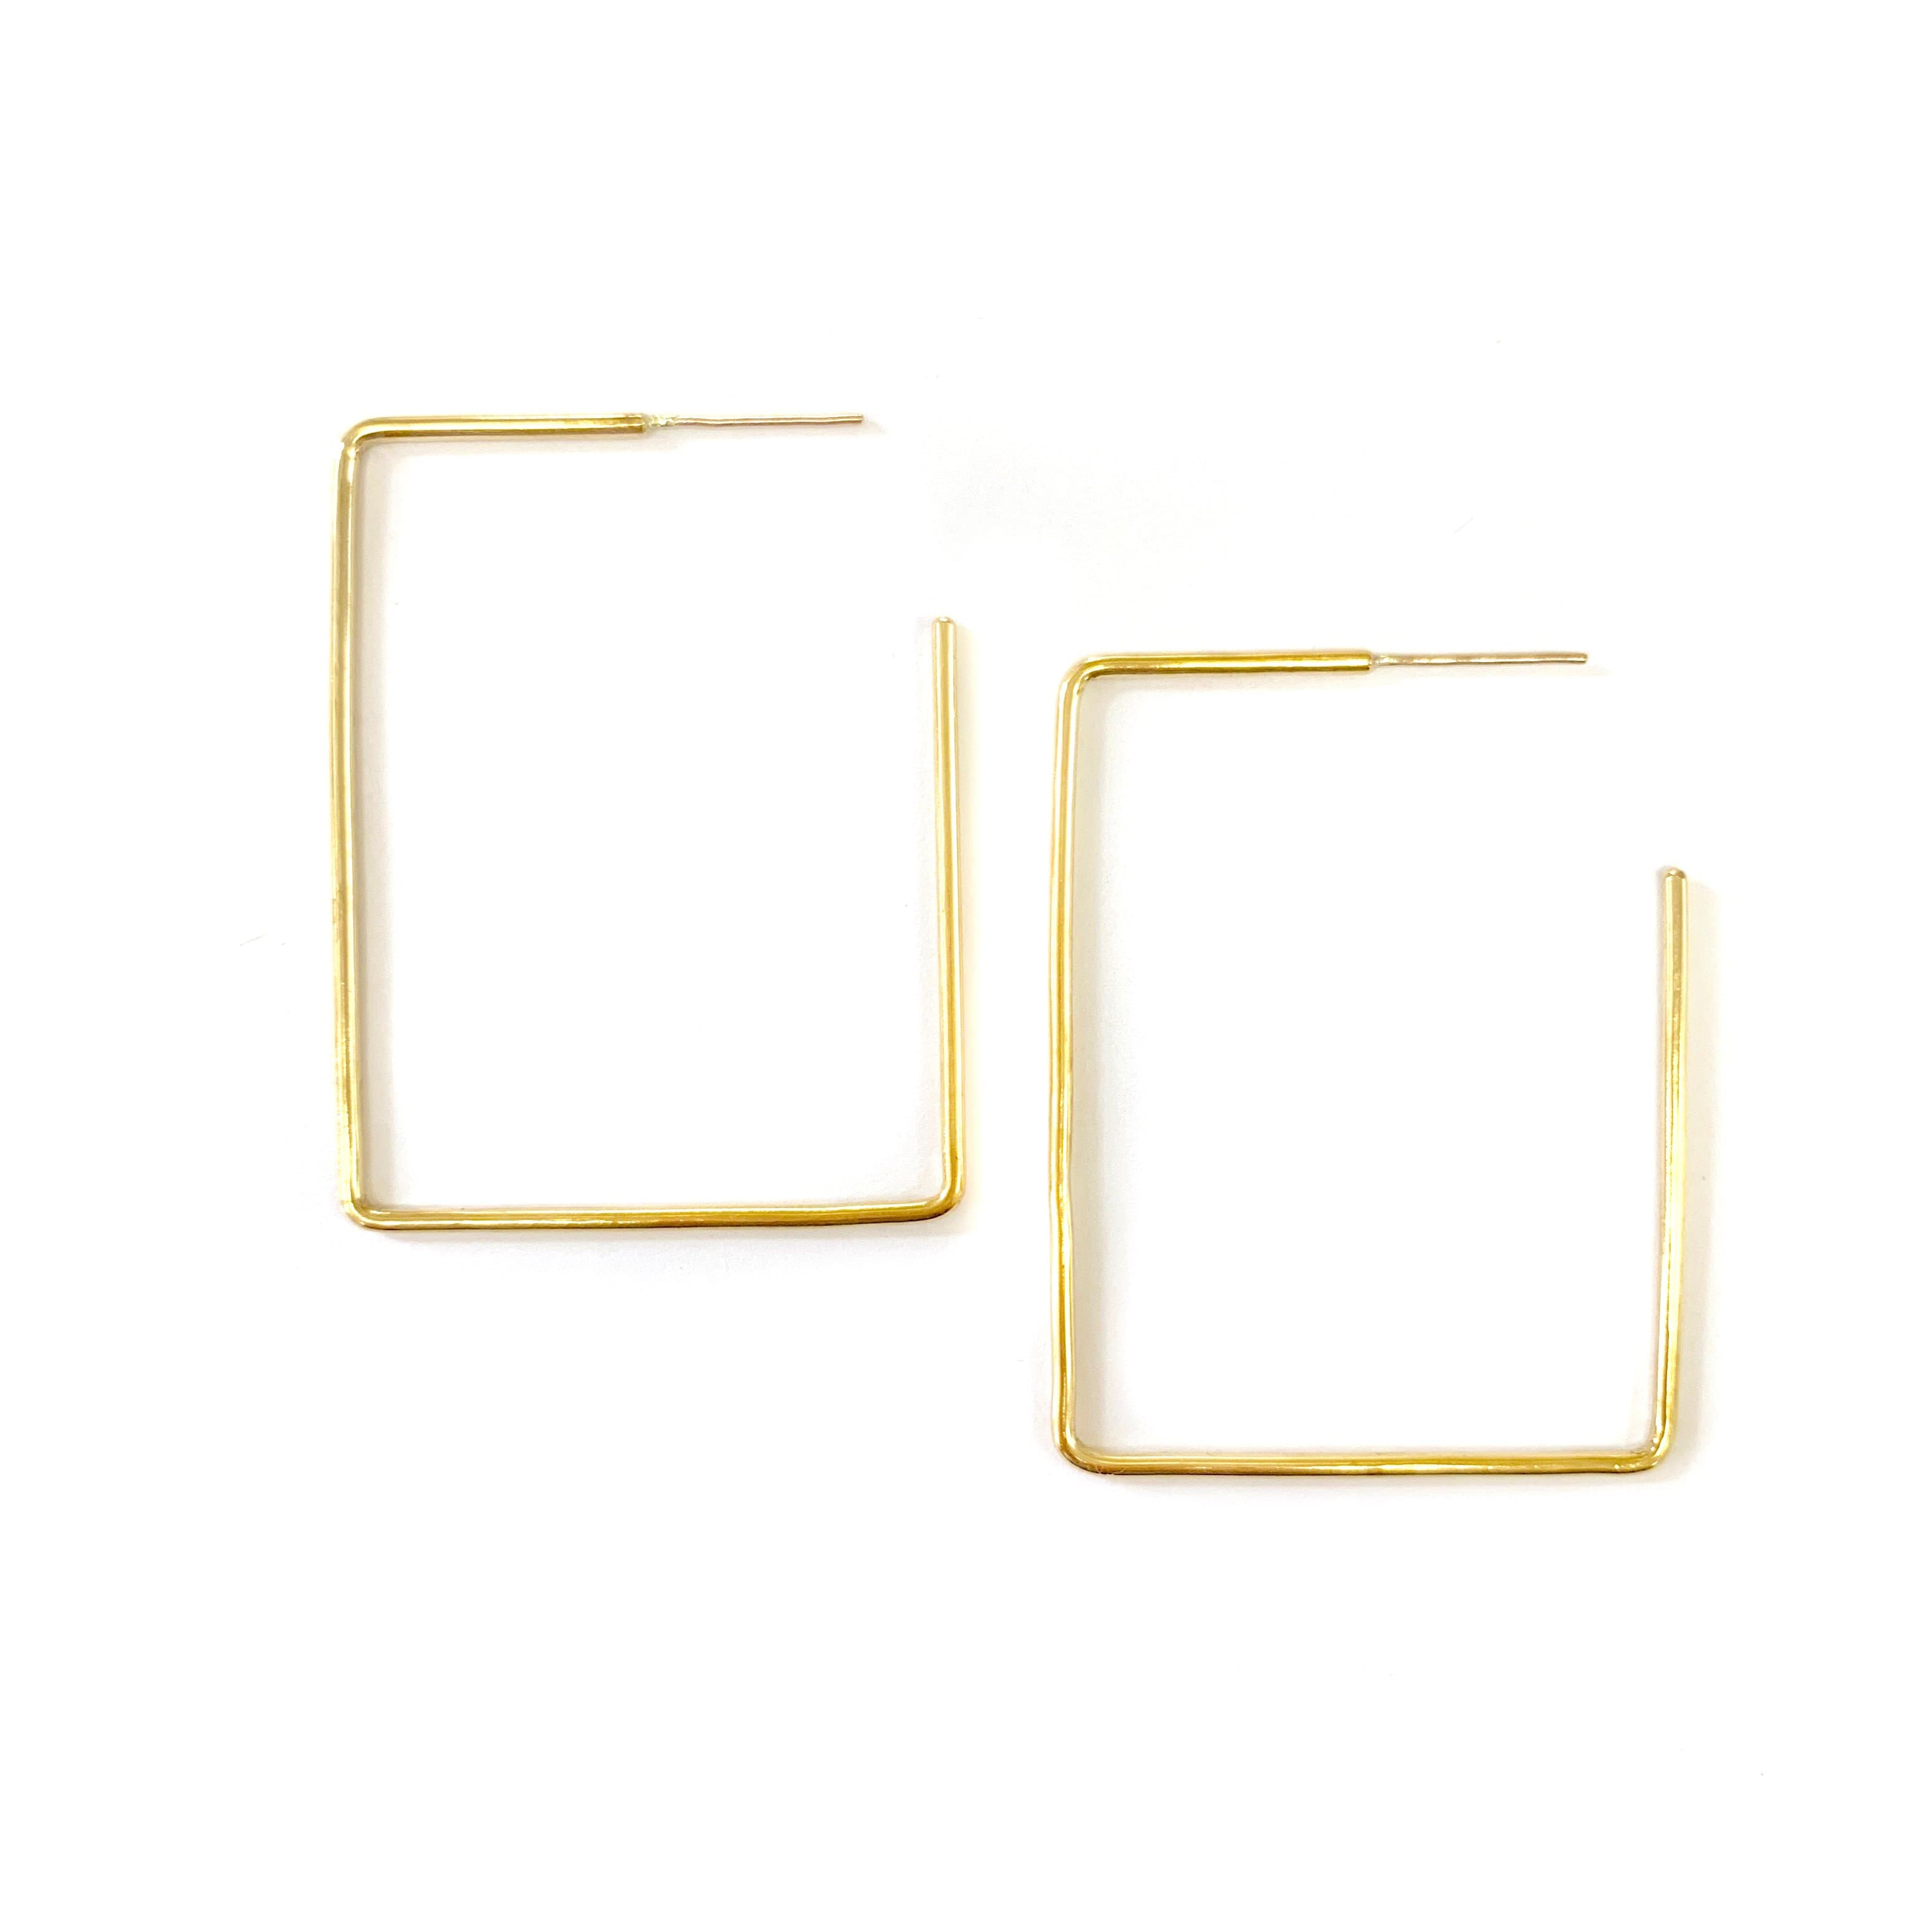 Rectangle Earring | Large, Earings, ADORN512, adorn512